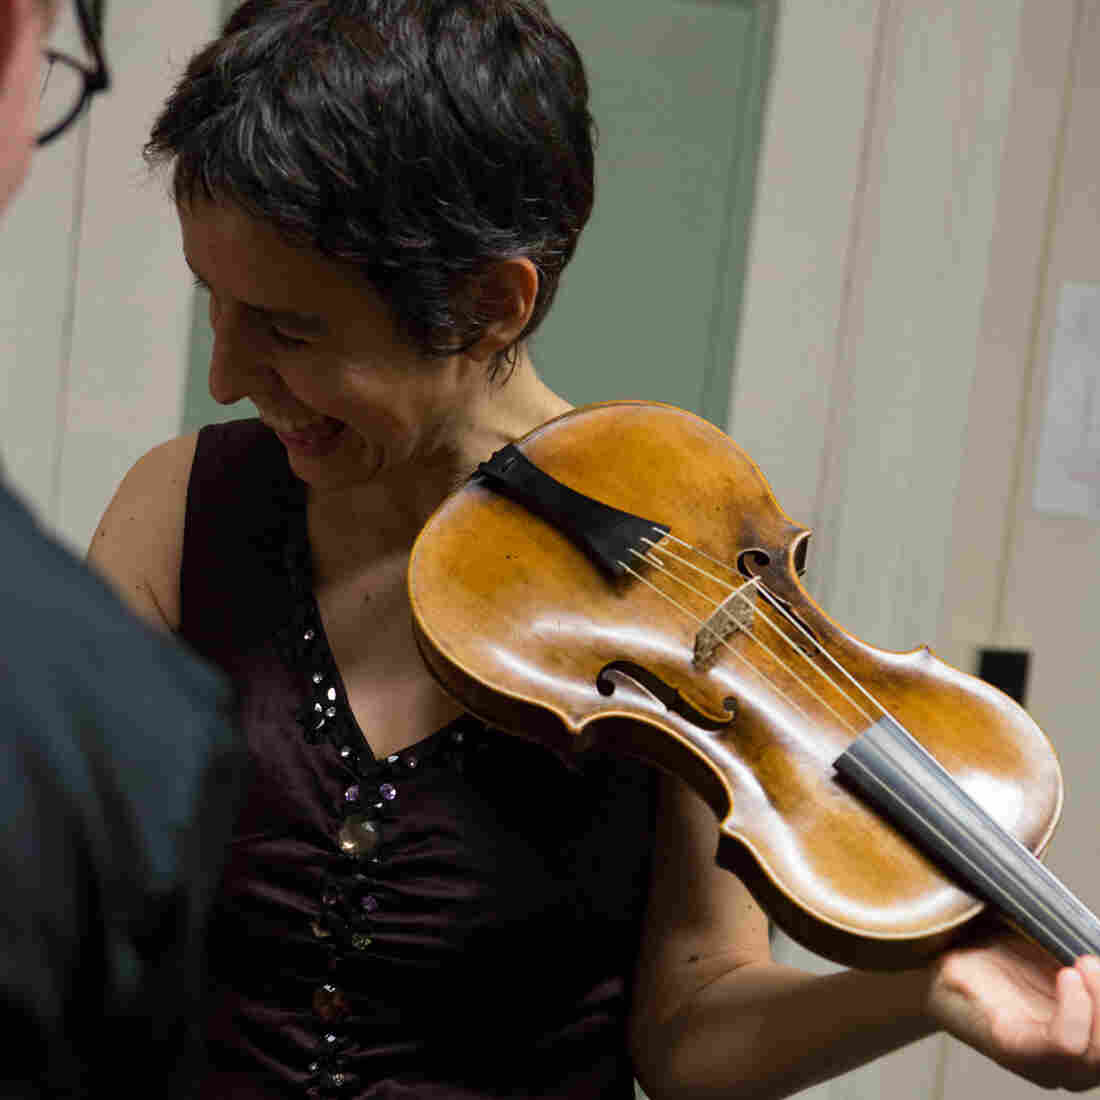 Playing Mozart — On Mozart's Violin